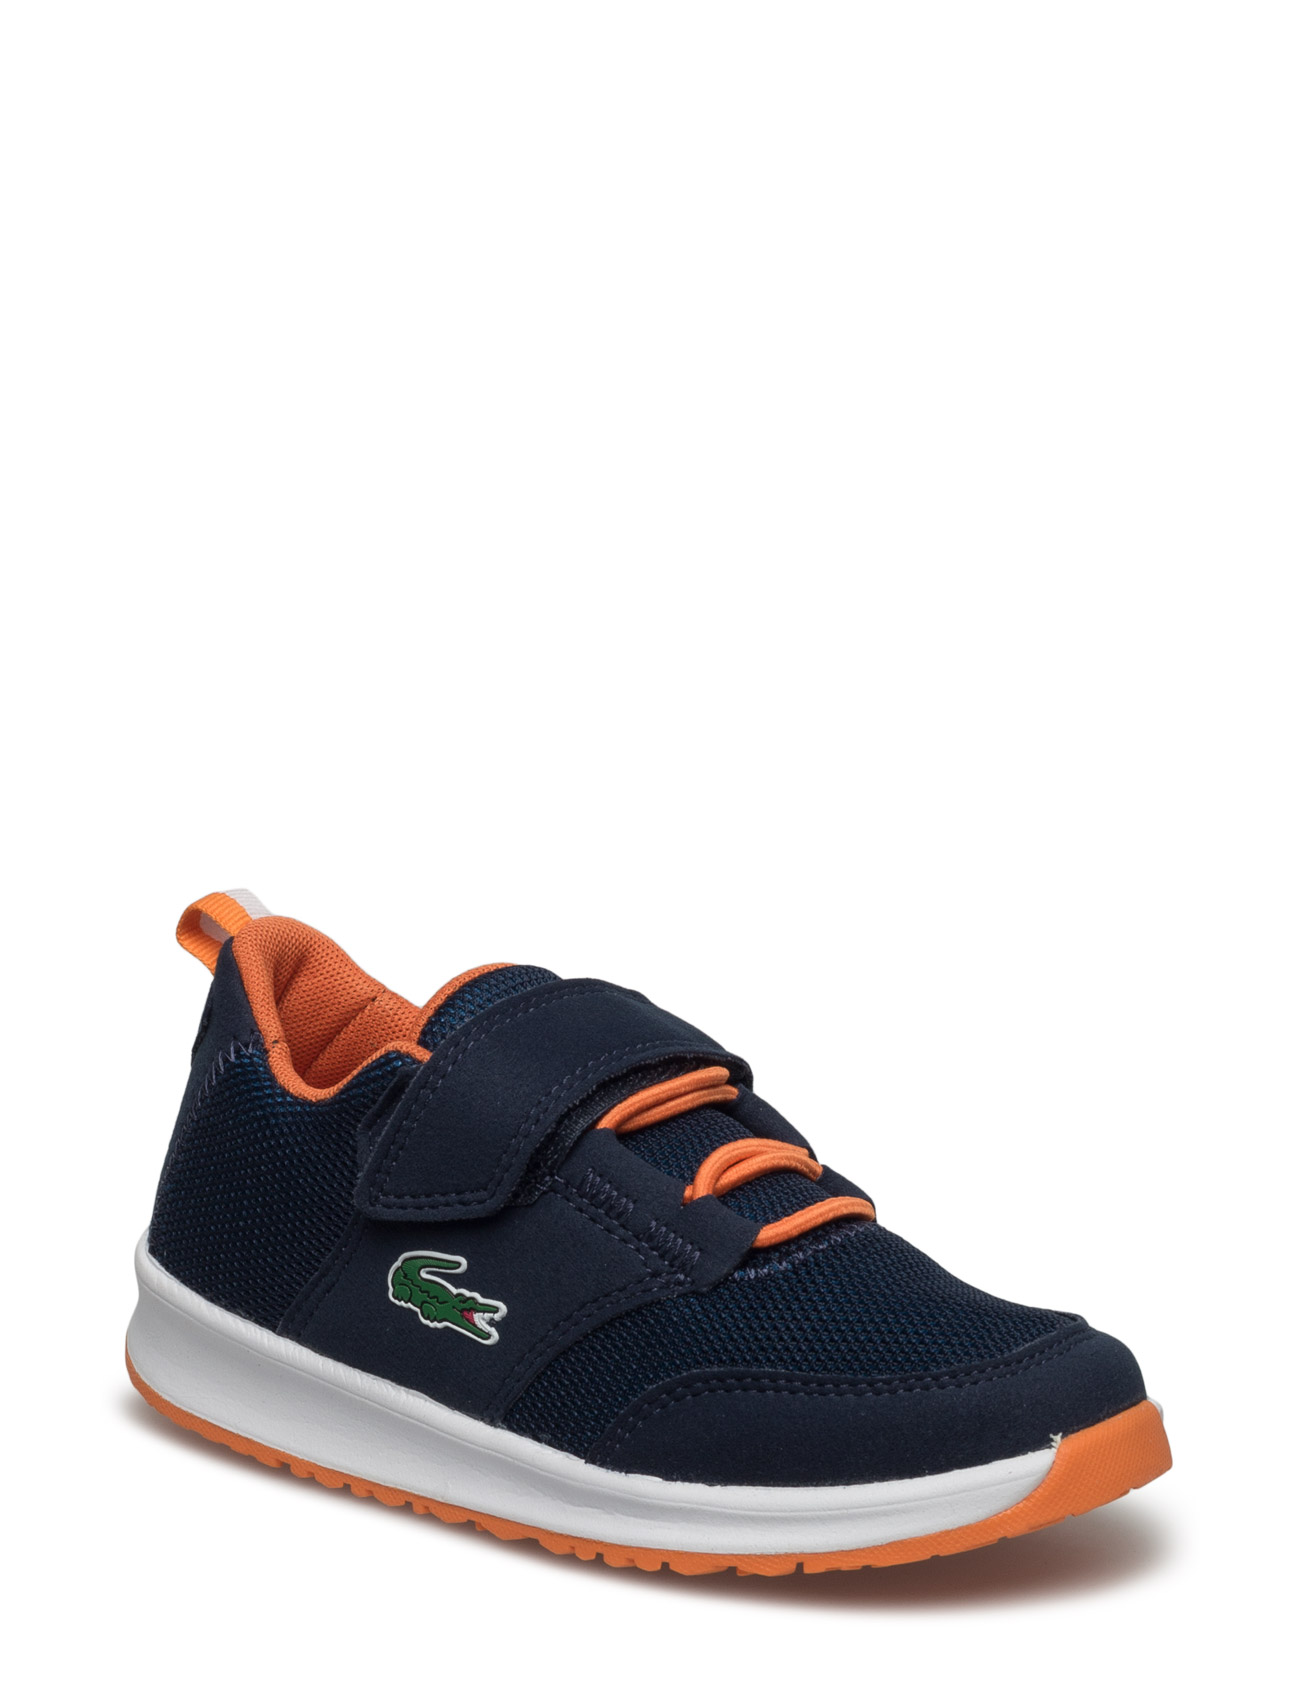 lacoste shoes – L.ight 217 1 fra boozt.com dk